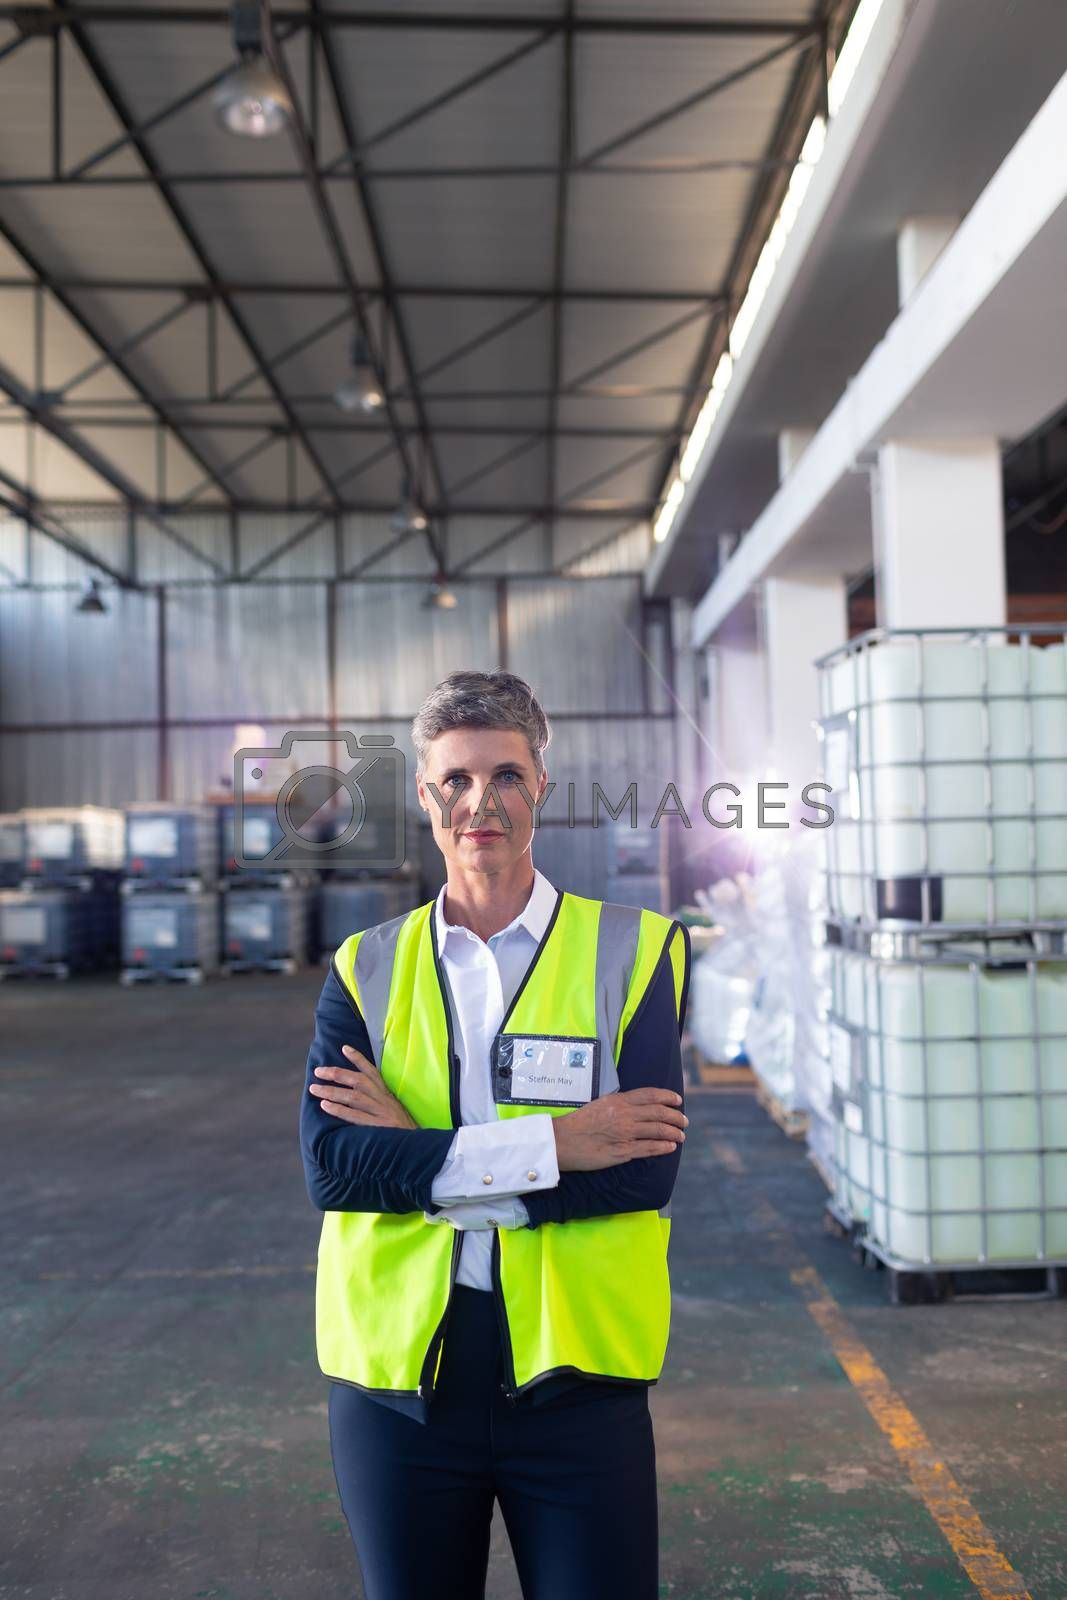 Portrait of Caucasian mature female staff in reflective jacket standing with arms crossed in warehouse. This is a freight transportation and distribution warehouse. Industrial and industrial workers concept